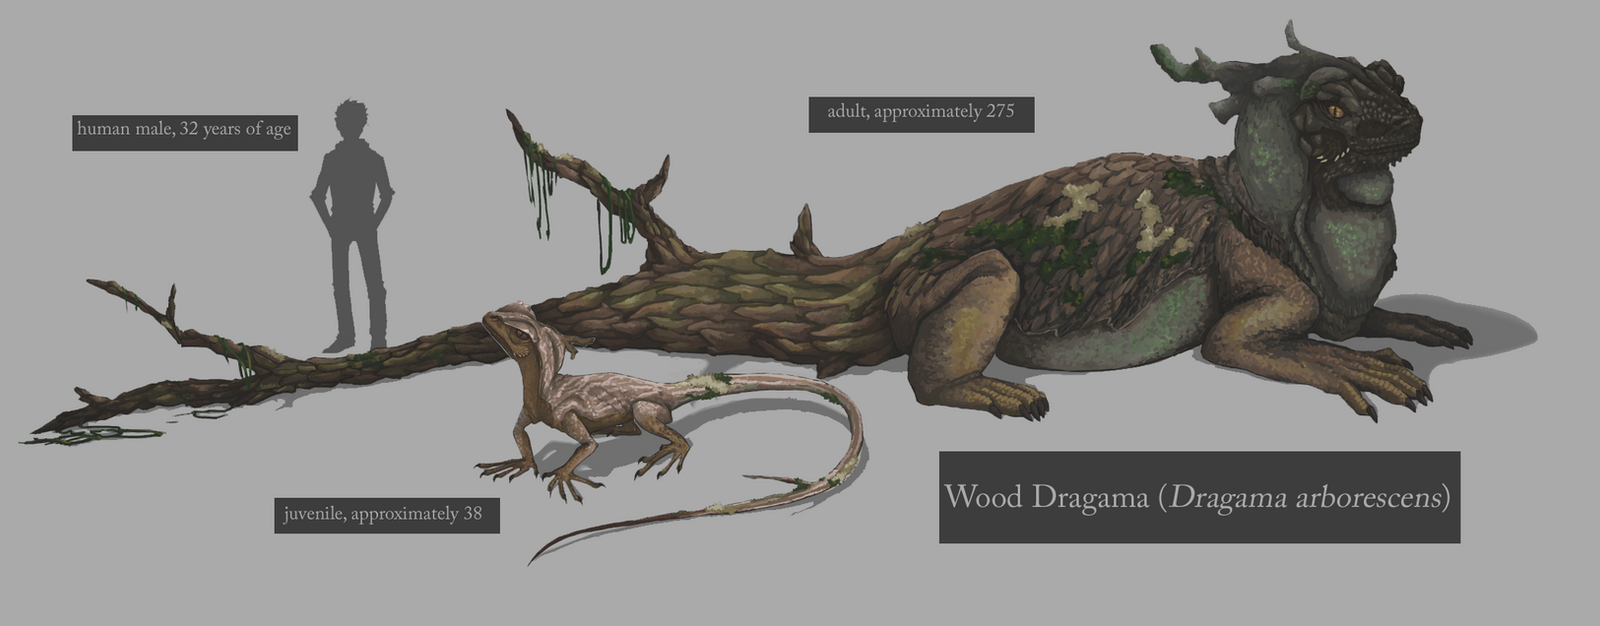 Wood Dragama by akvz